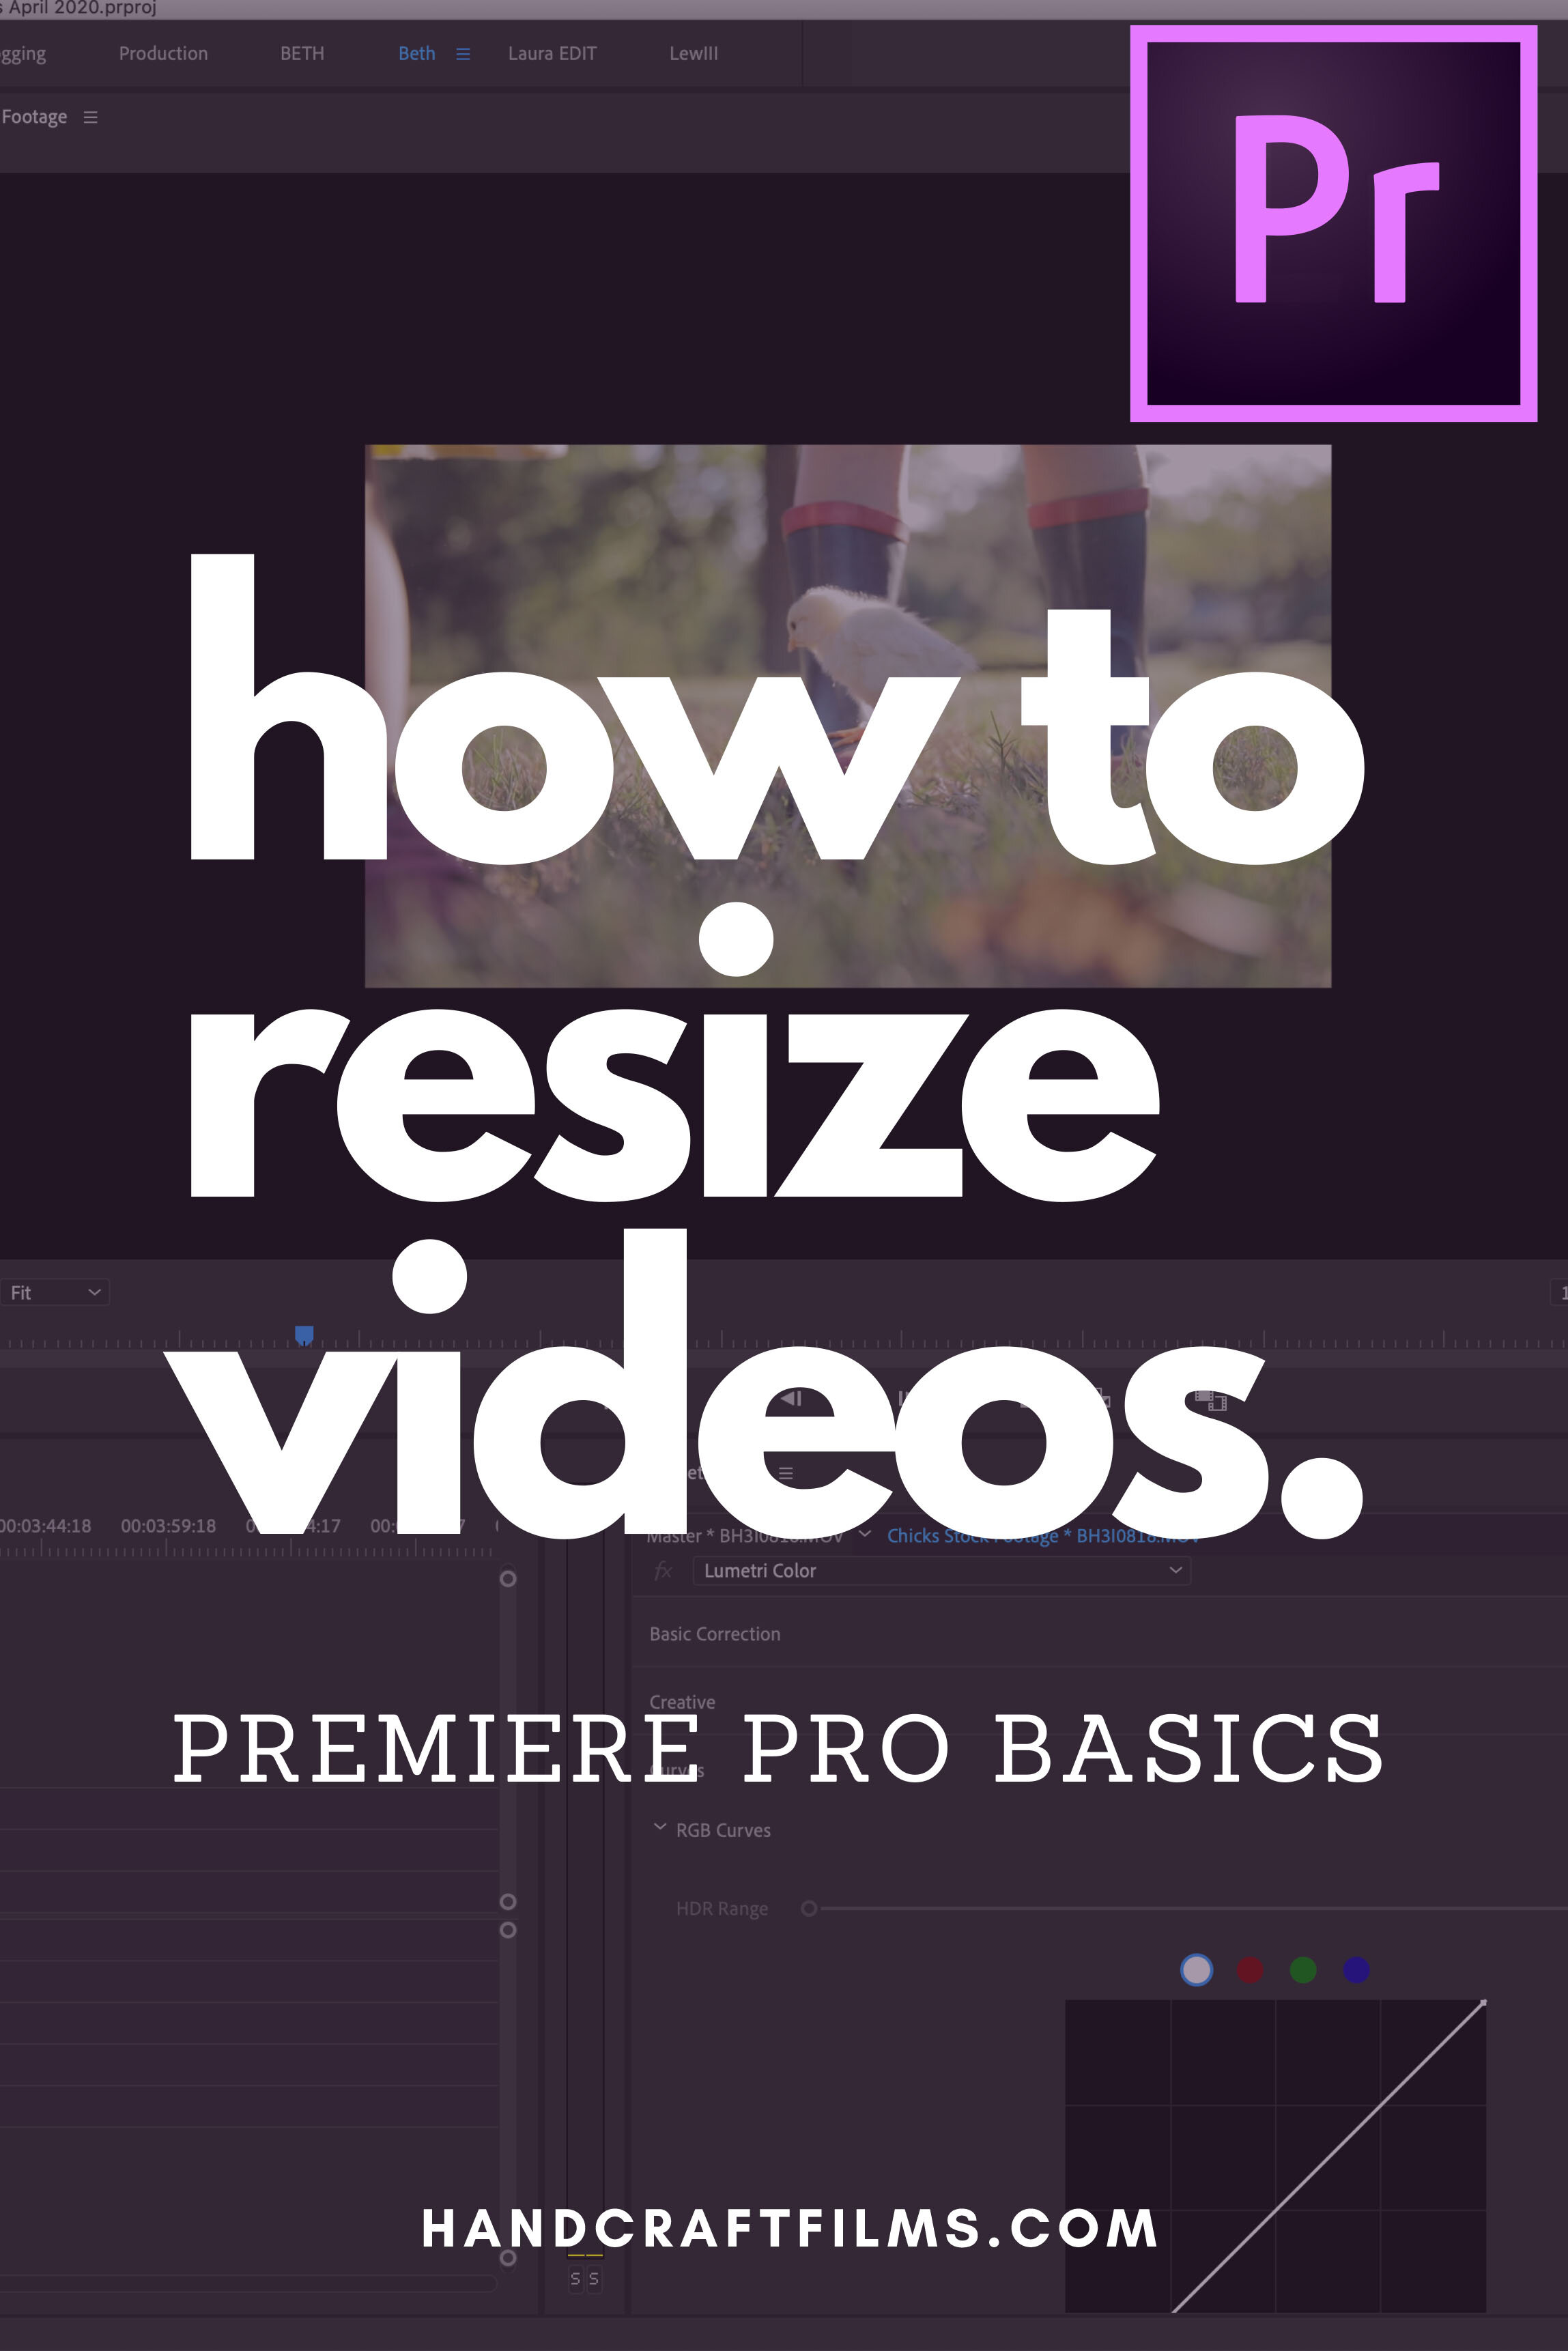 How to Resize Videos in Premiere Pro